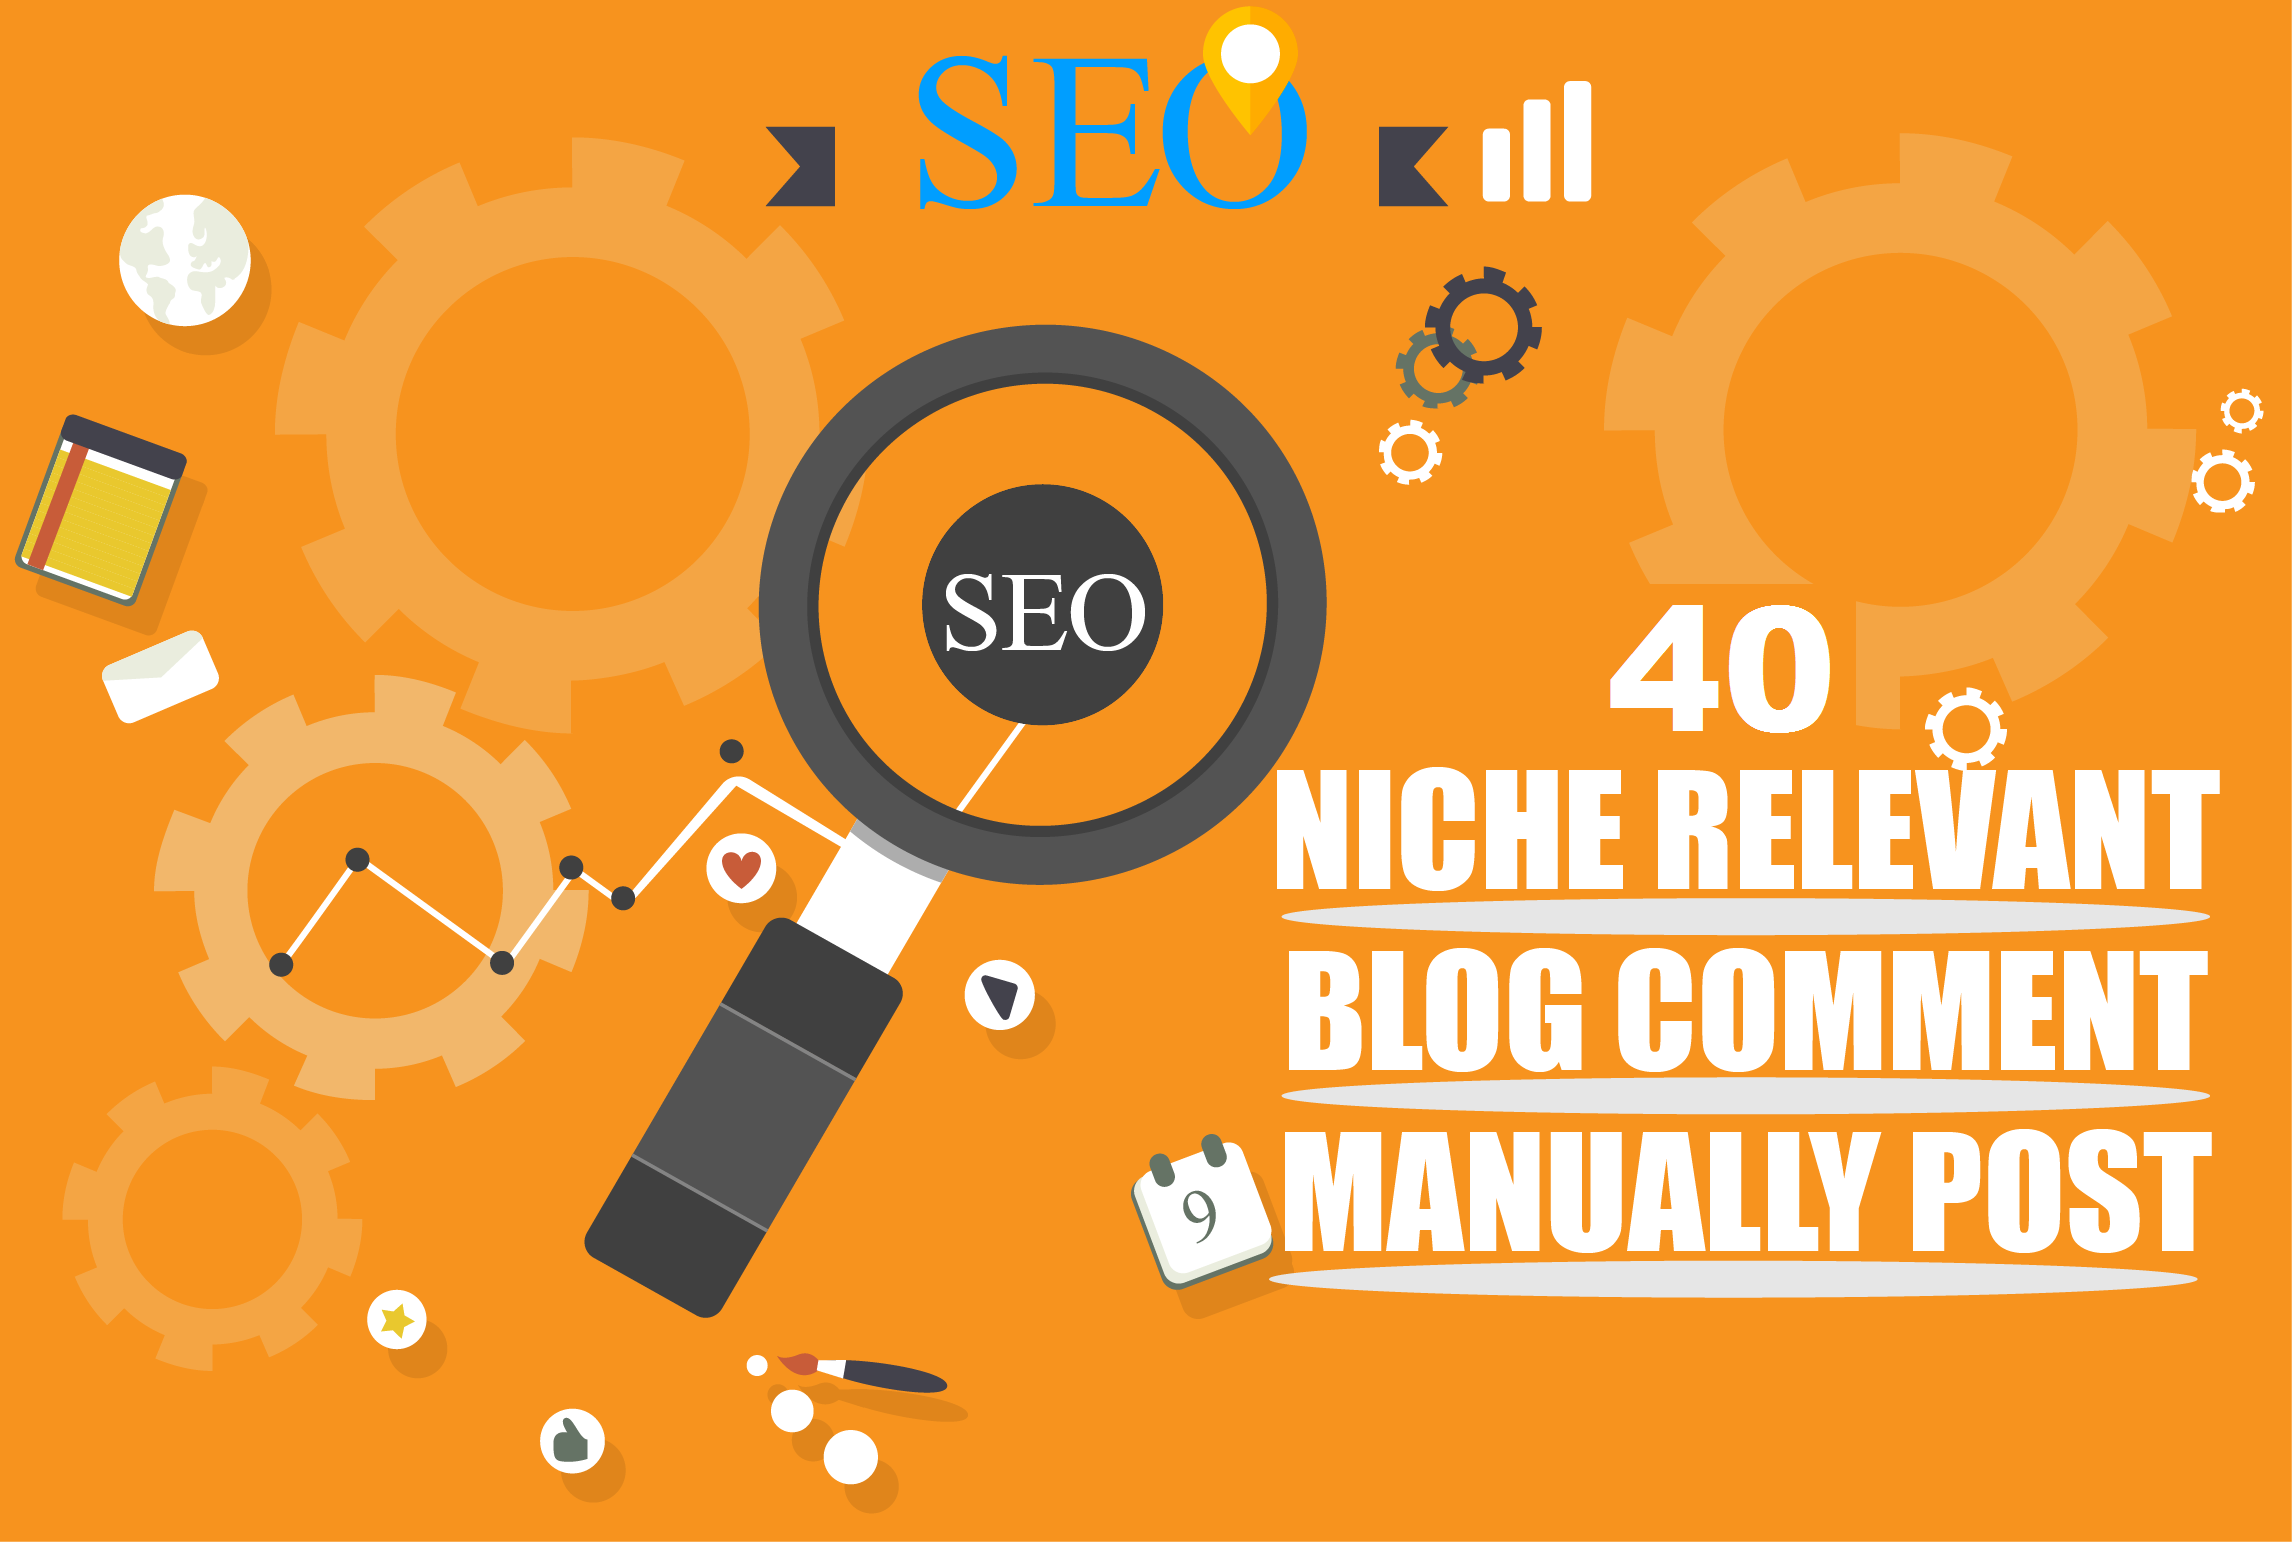 I will do 40 niche relevant blog comments nofollow backlink top quality guaranteed